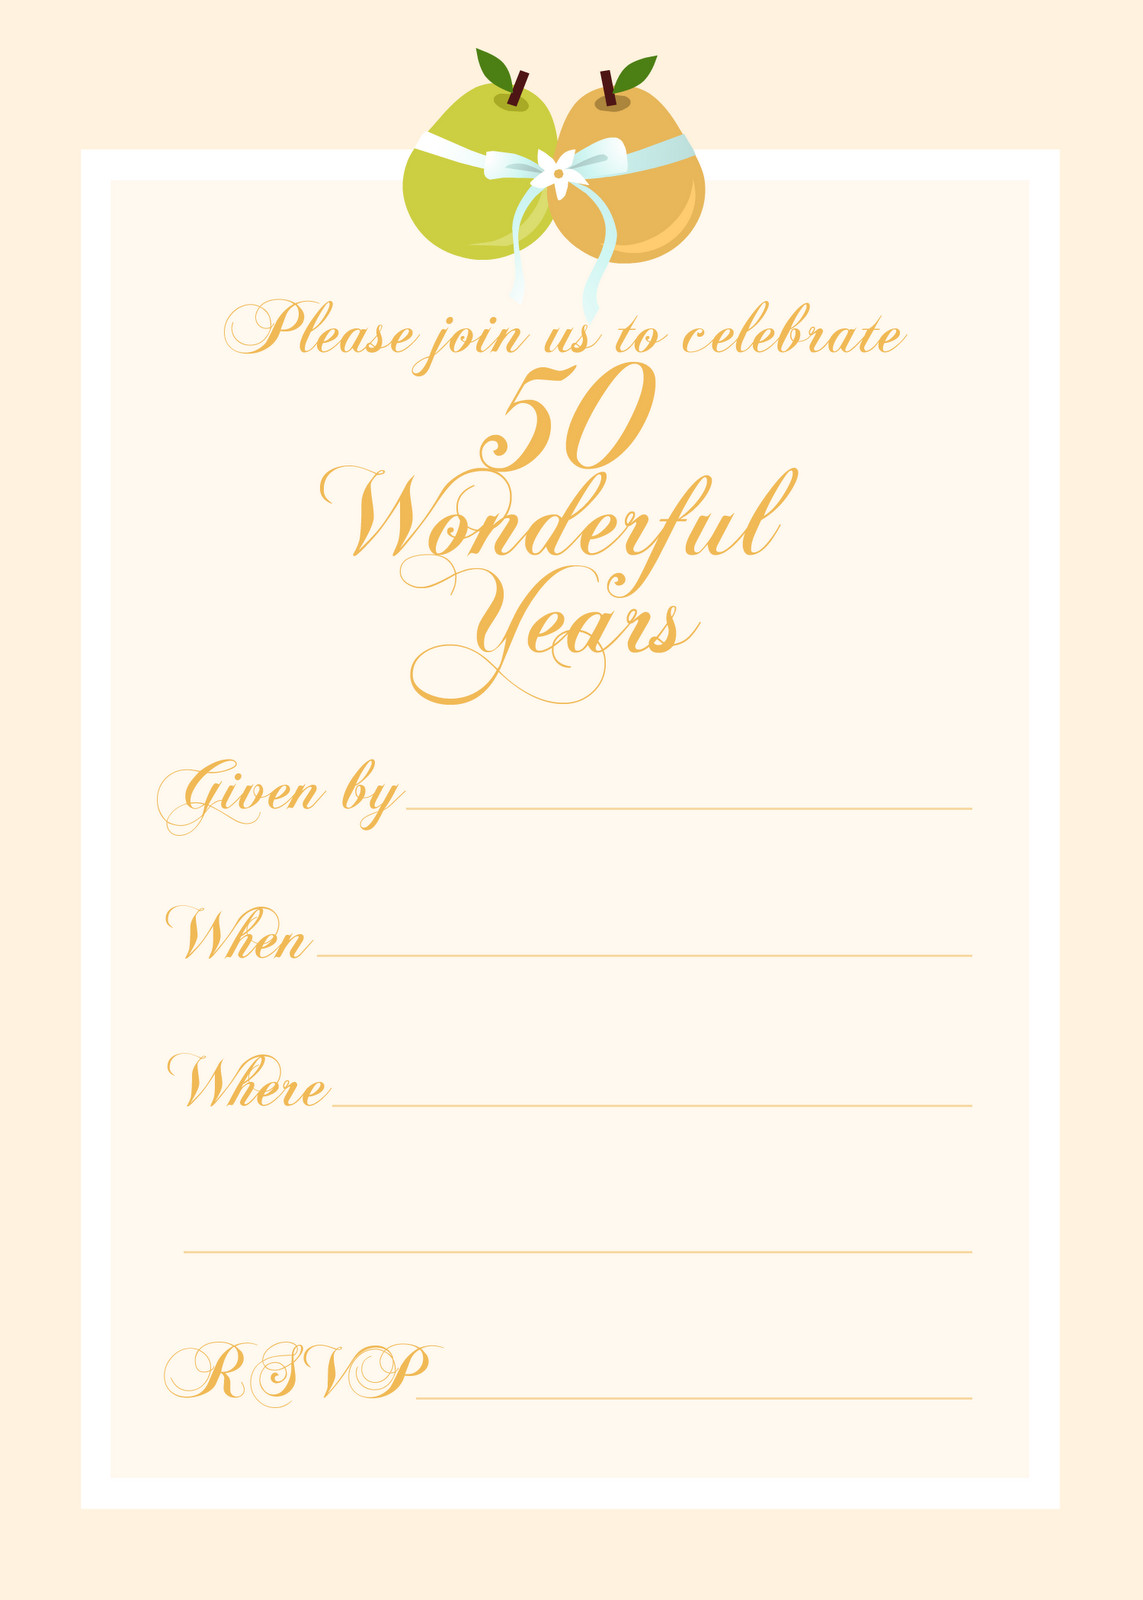 50th Anniversary Invitations Templates Free Printable Party Invitations Free 50th Wedding